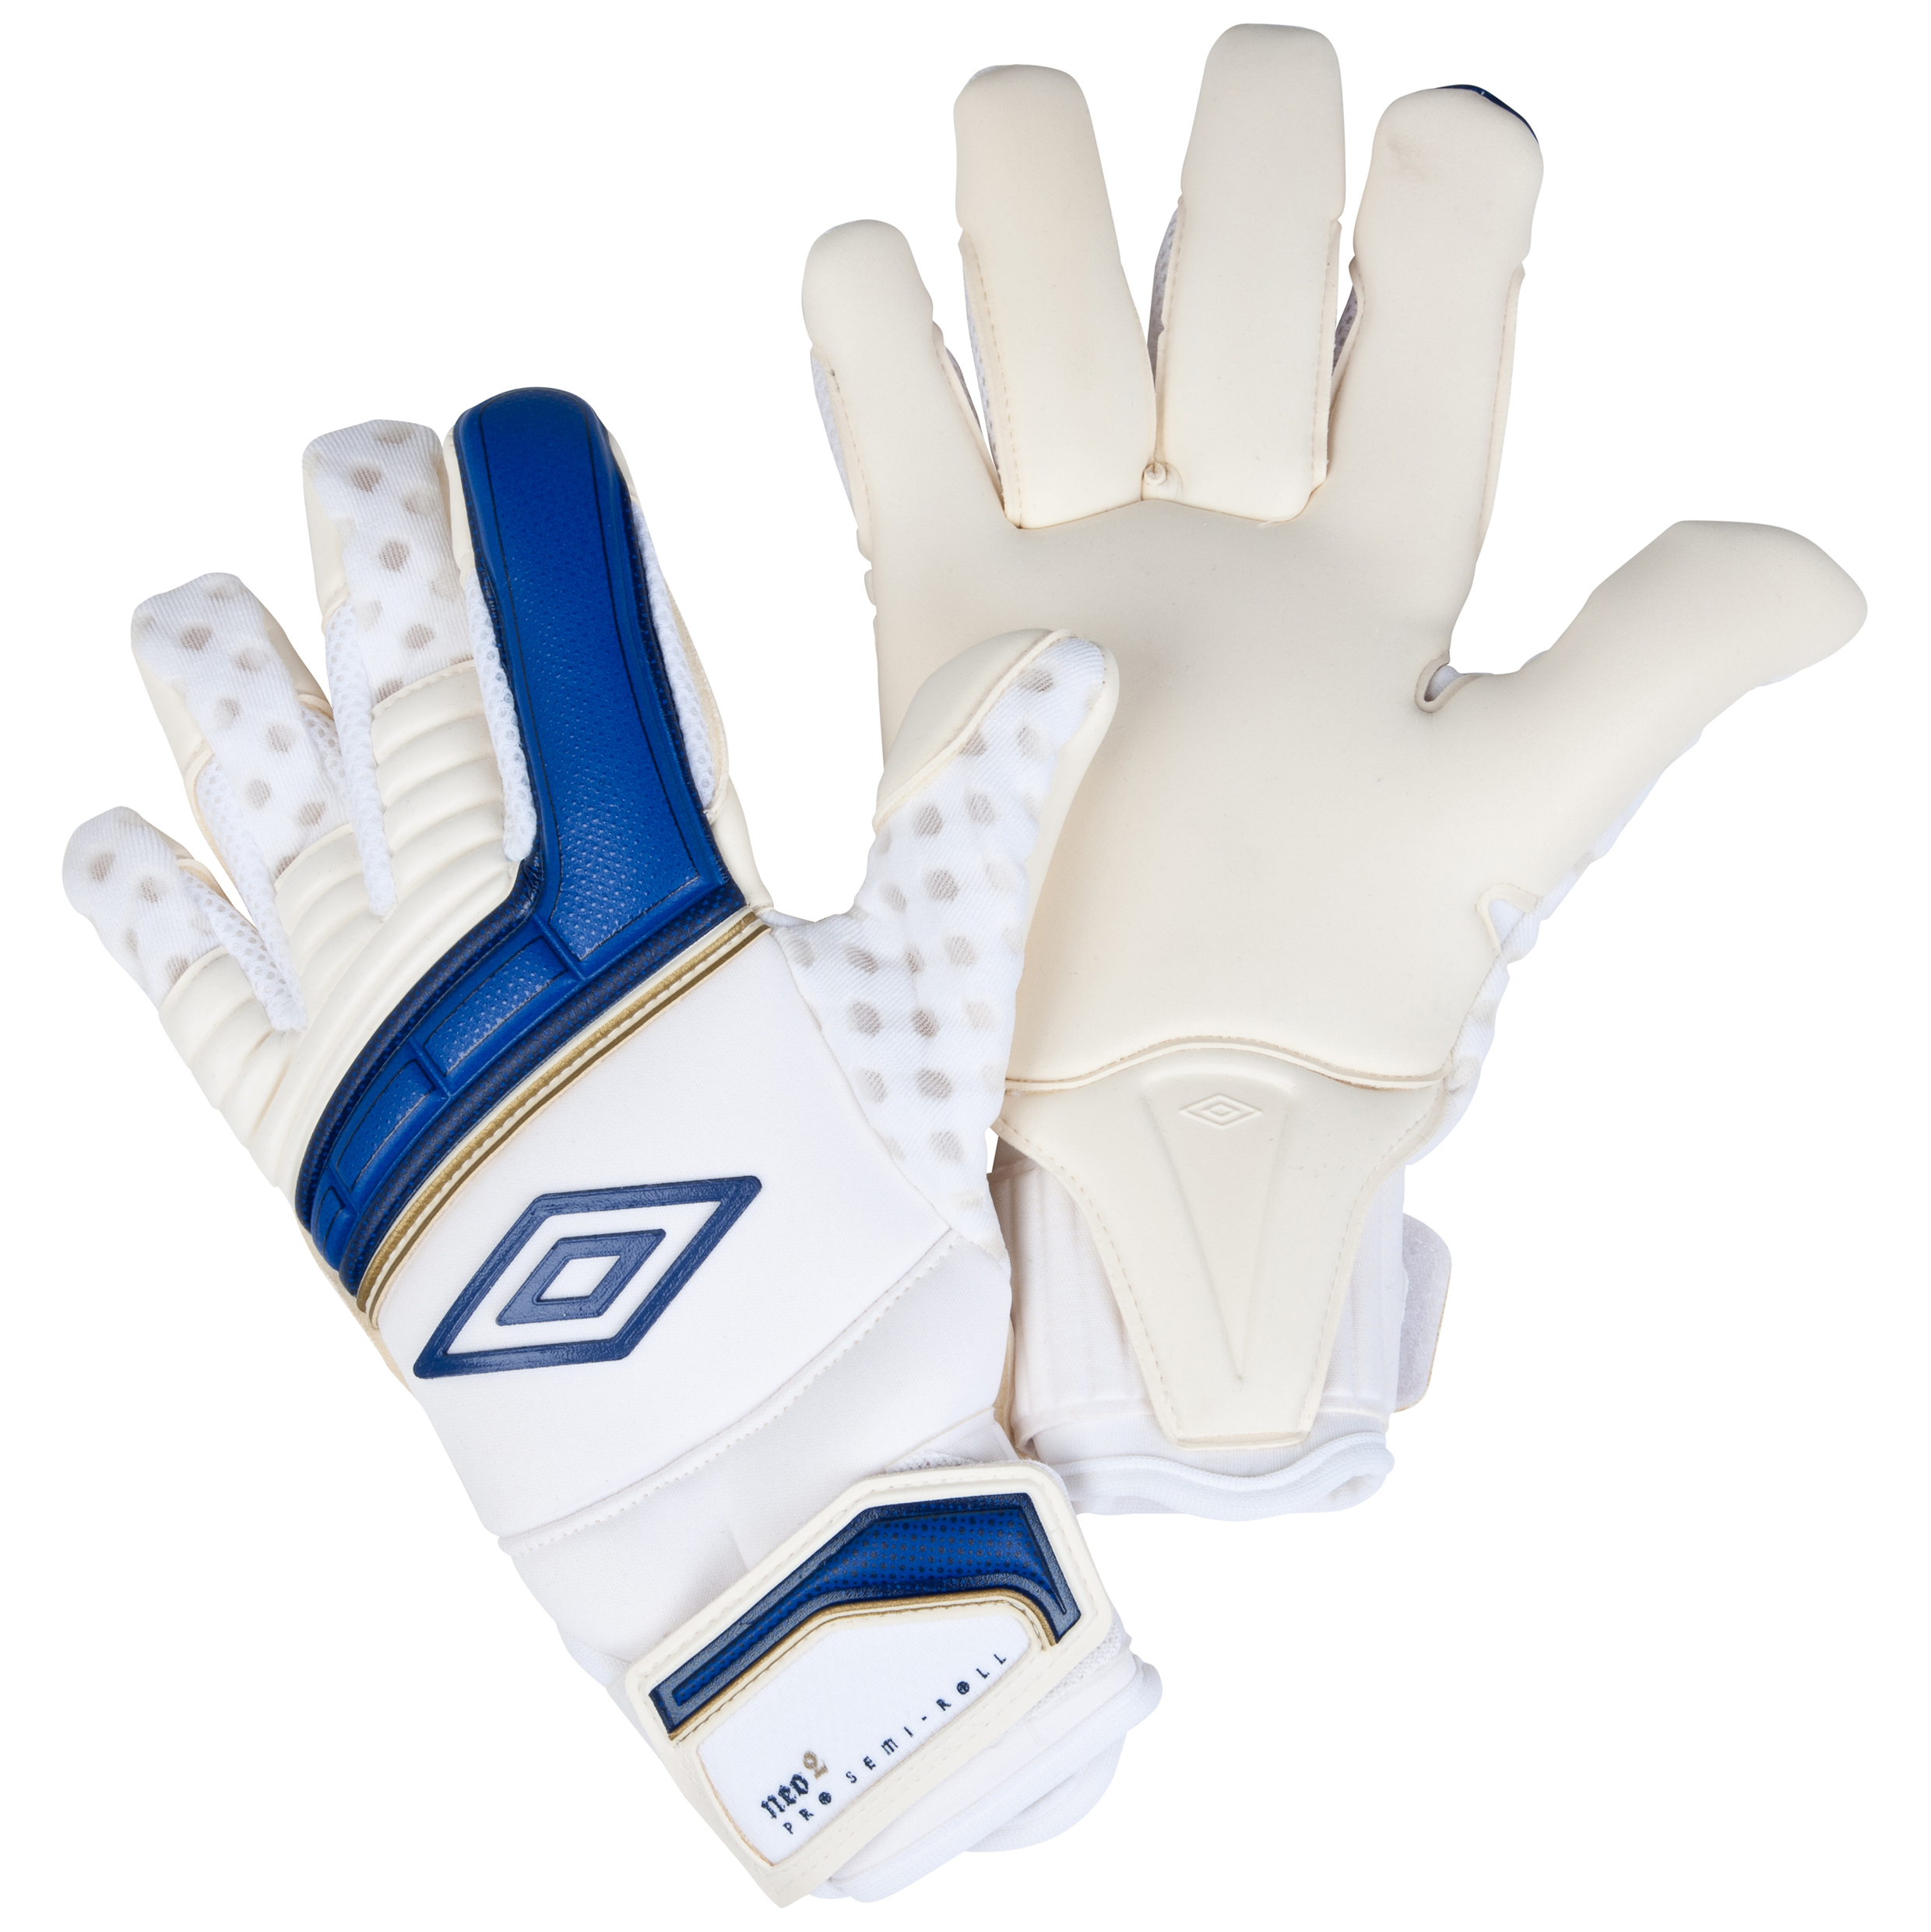 Umbro Neo Pro Goalkeeper Gloves-White / Twilight Blue / Gold